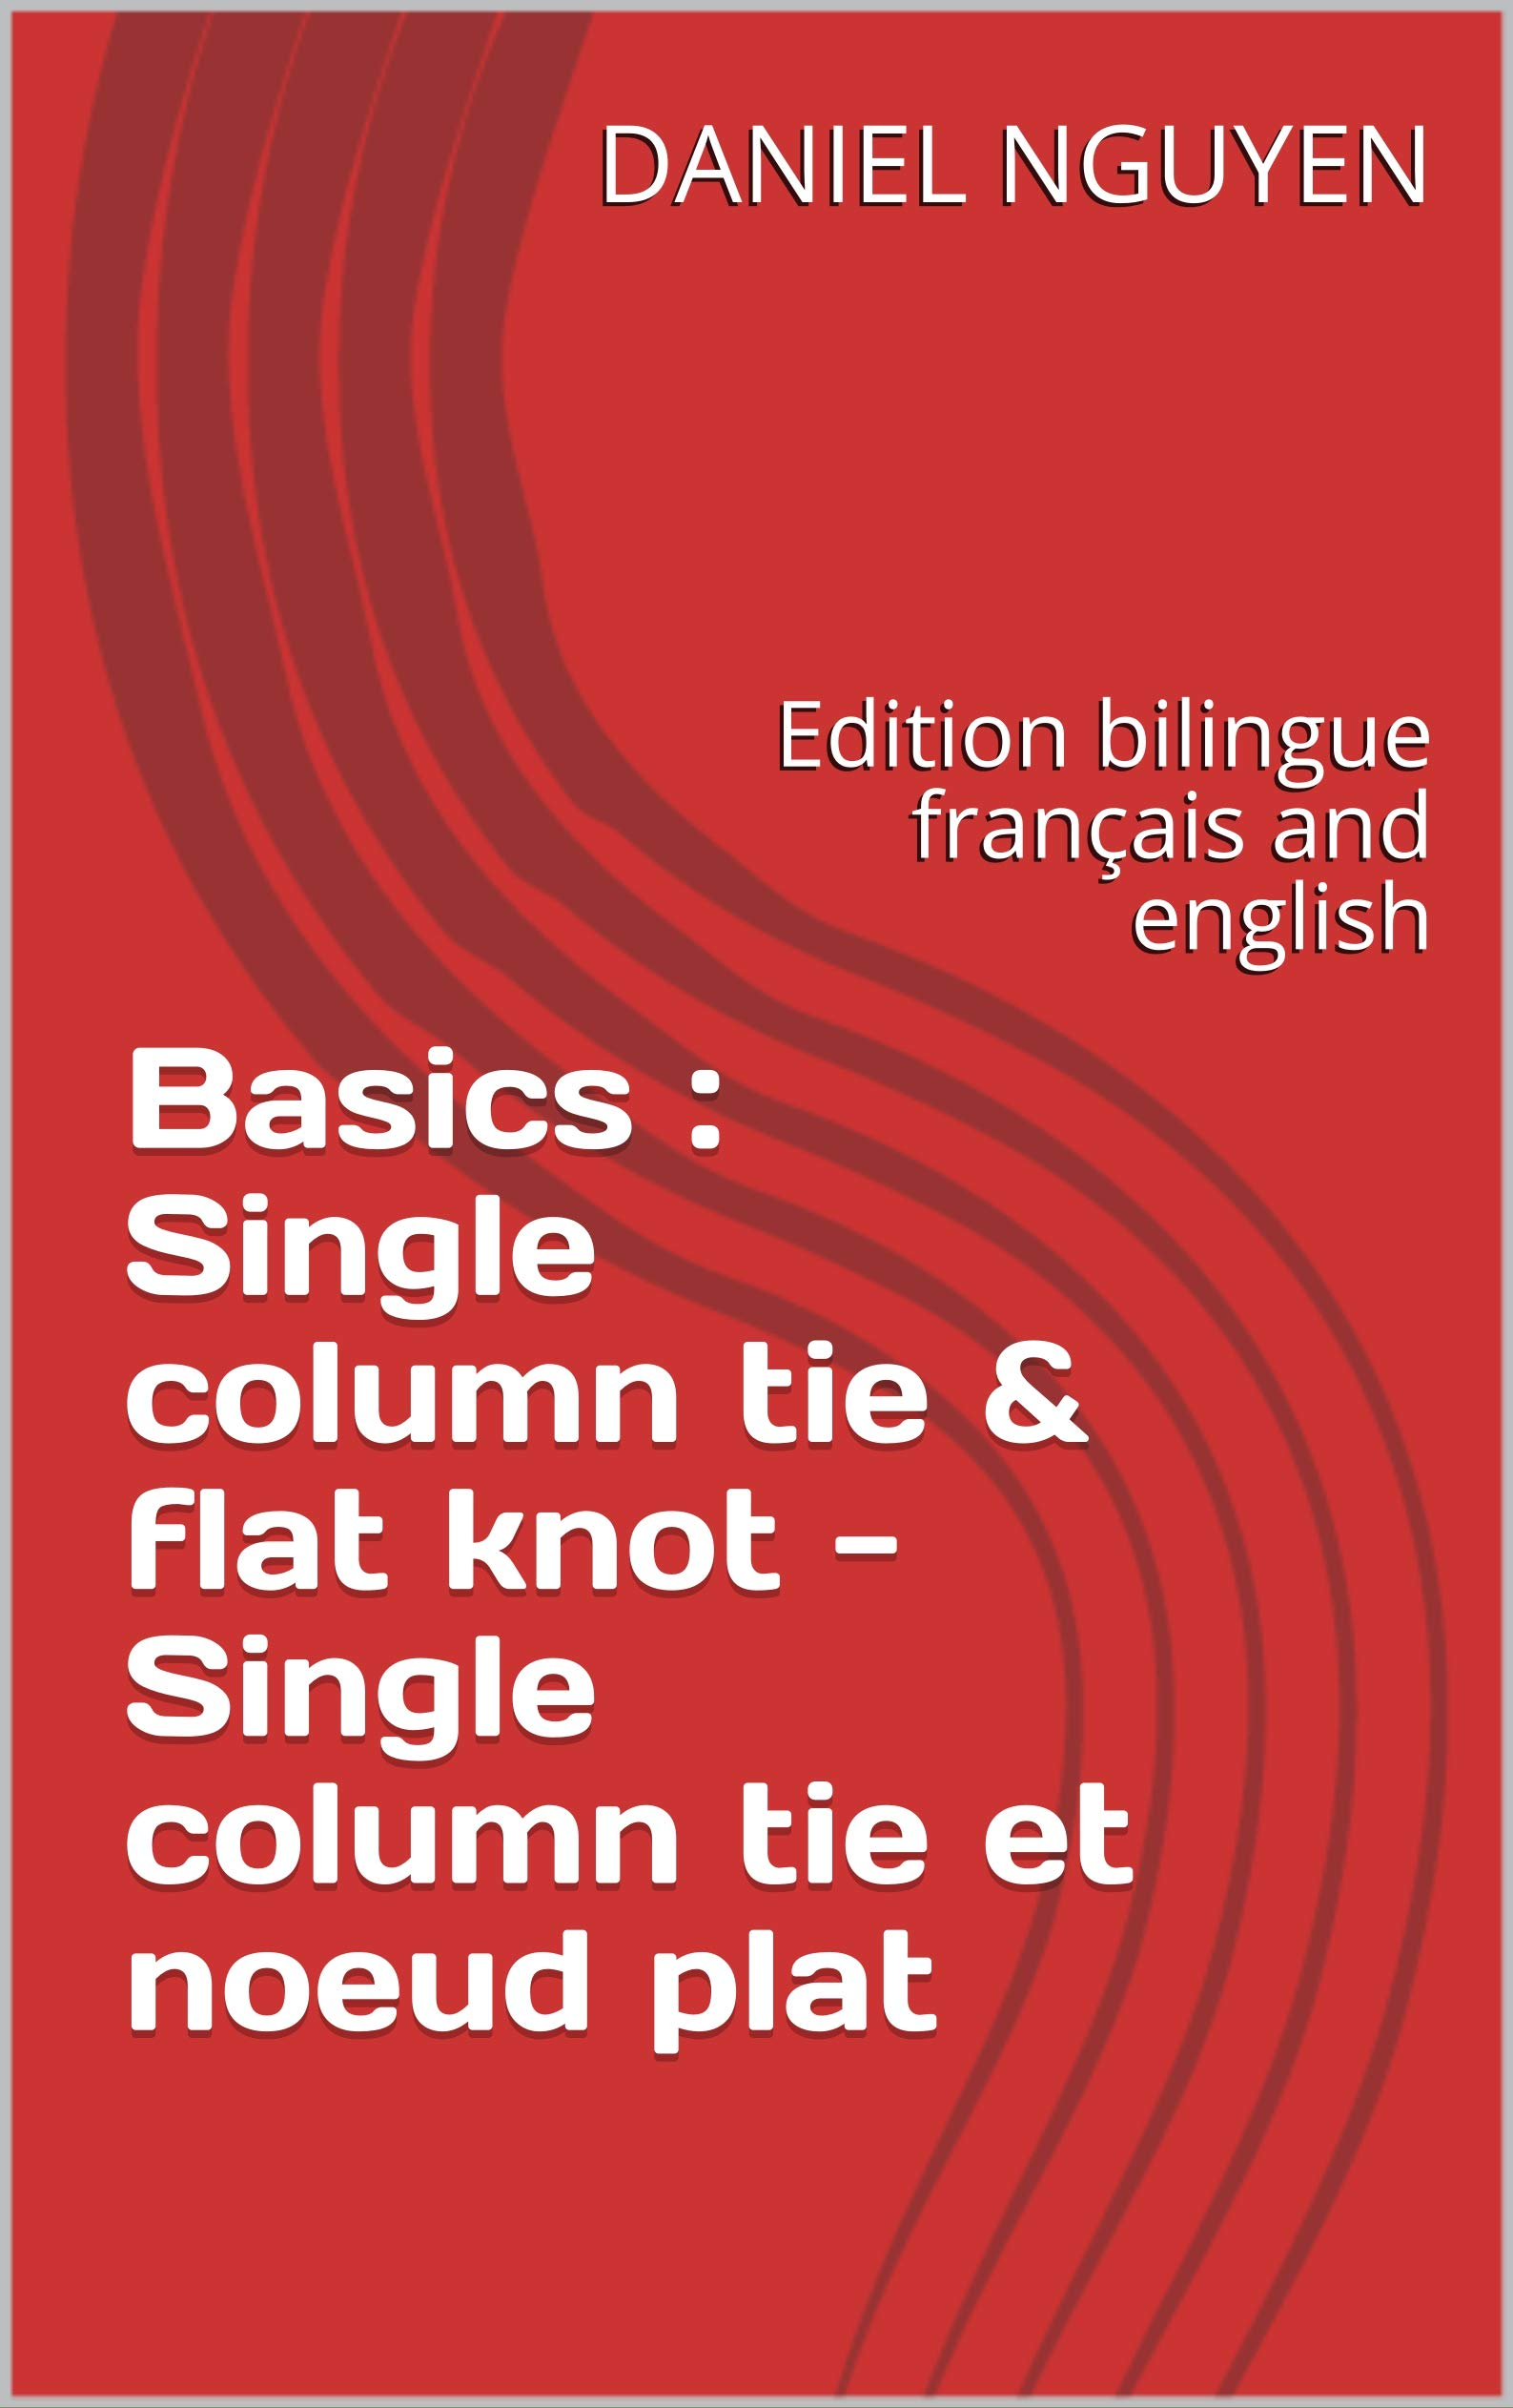 Basics : Single column tie & flat knot - Single column tie et noeud plat : Edition bilingue français and english (Shibari Basics t. 1)